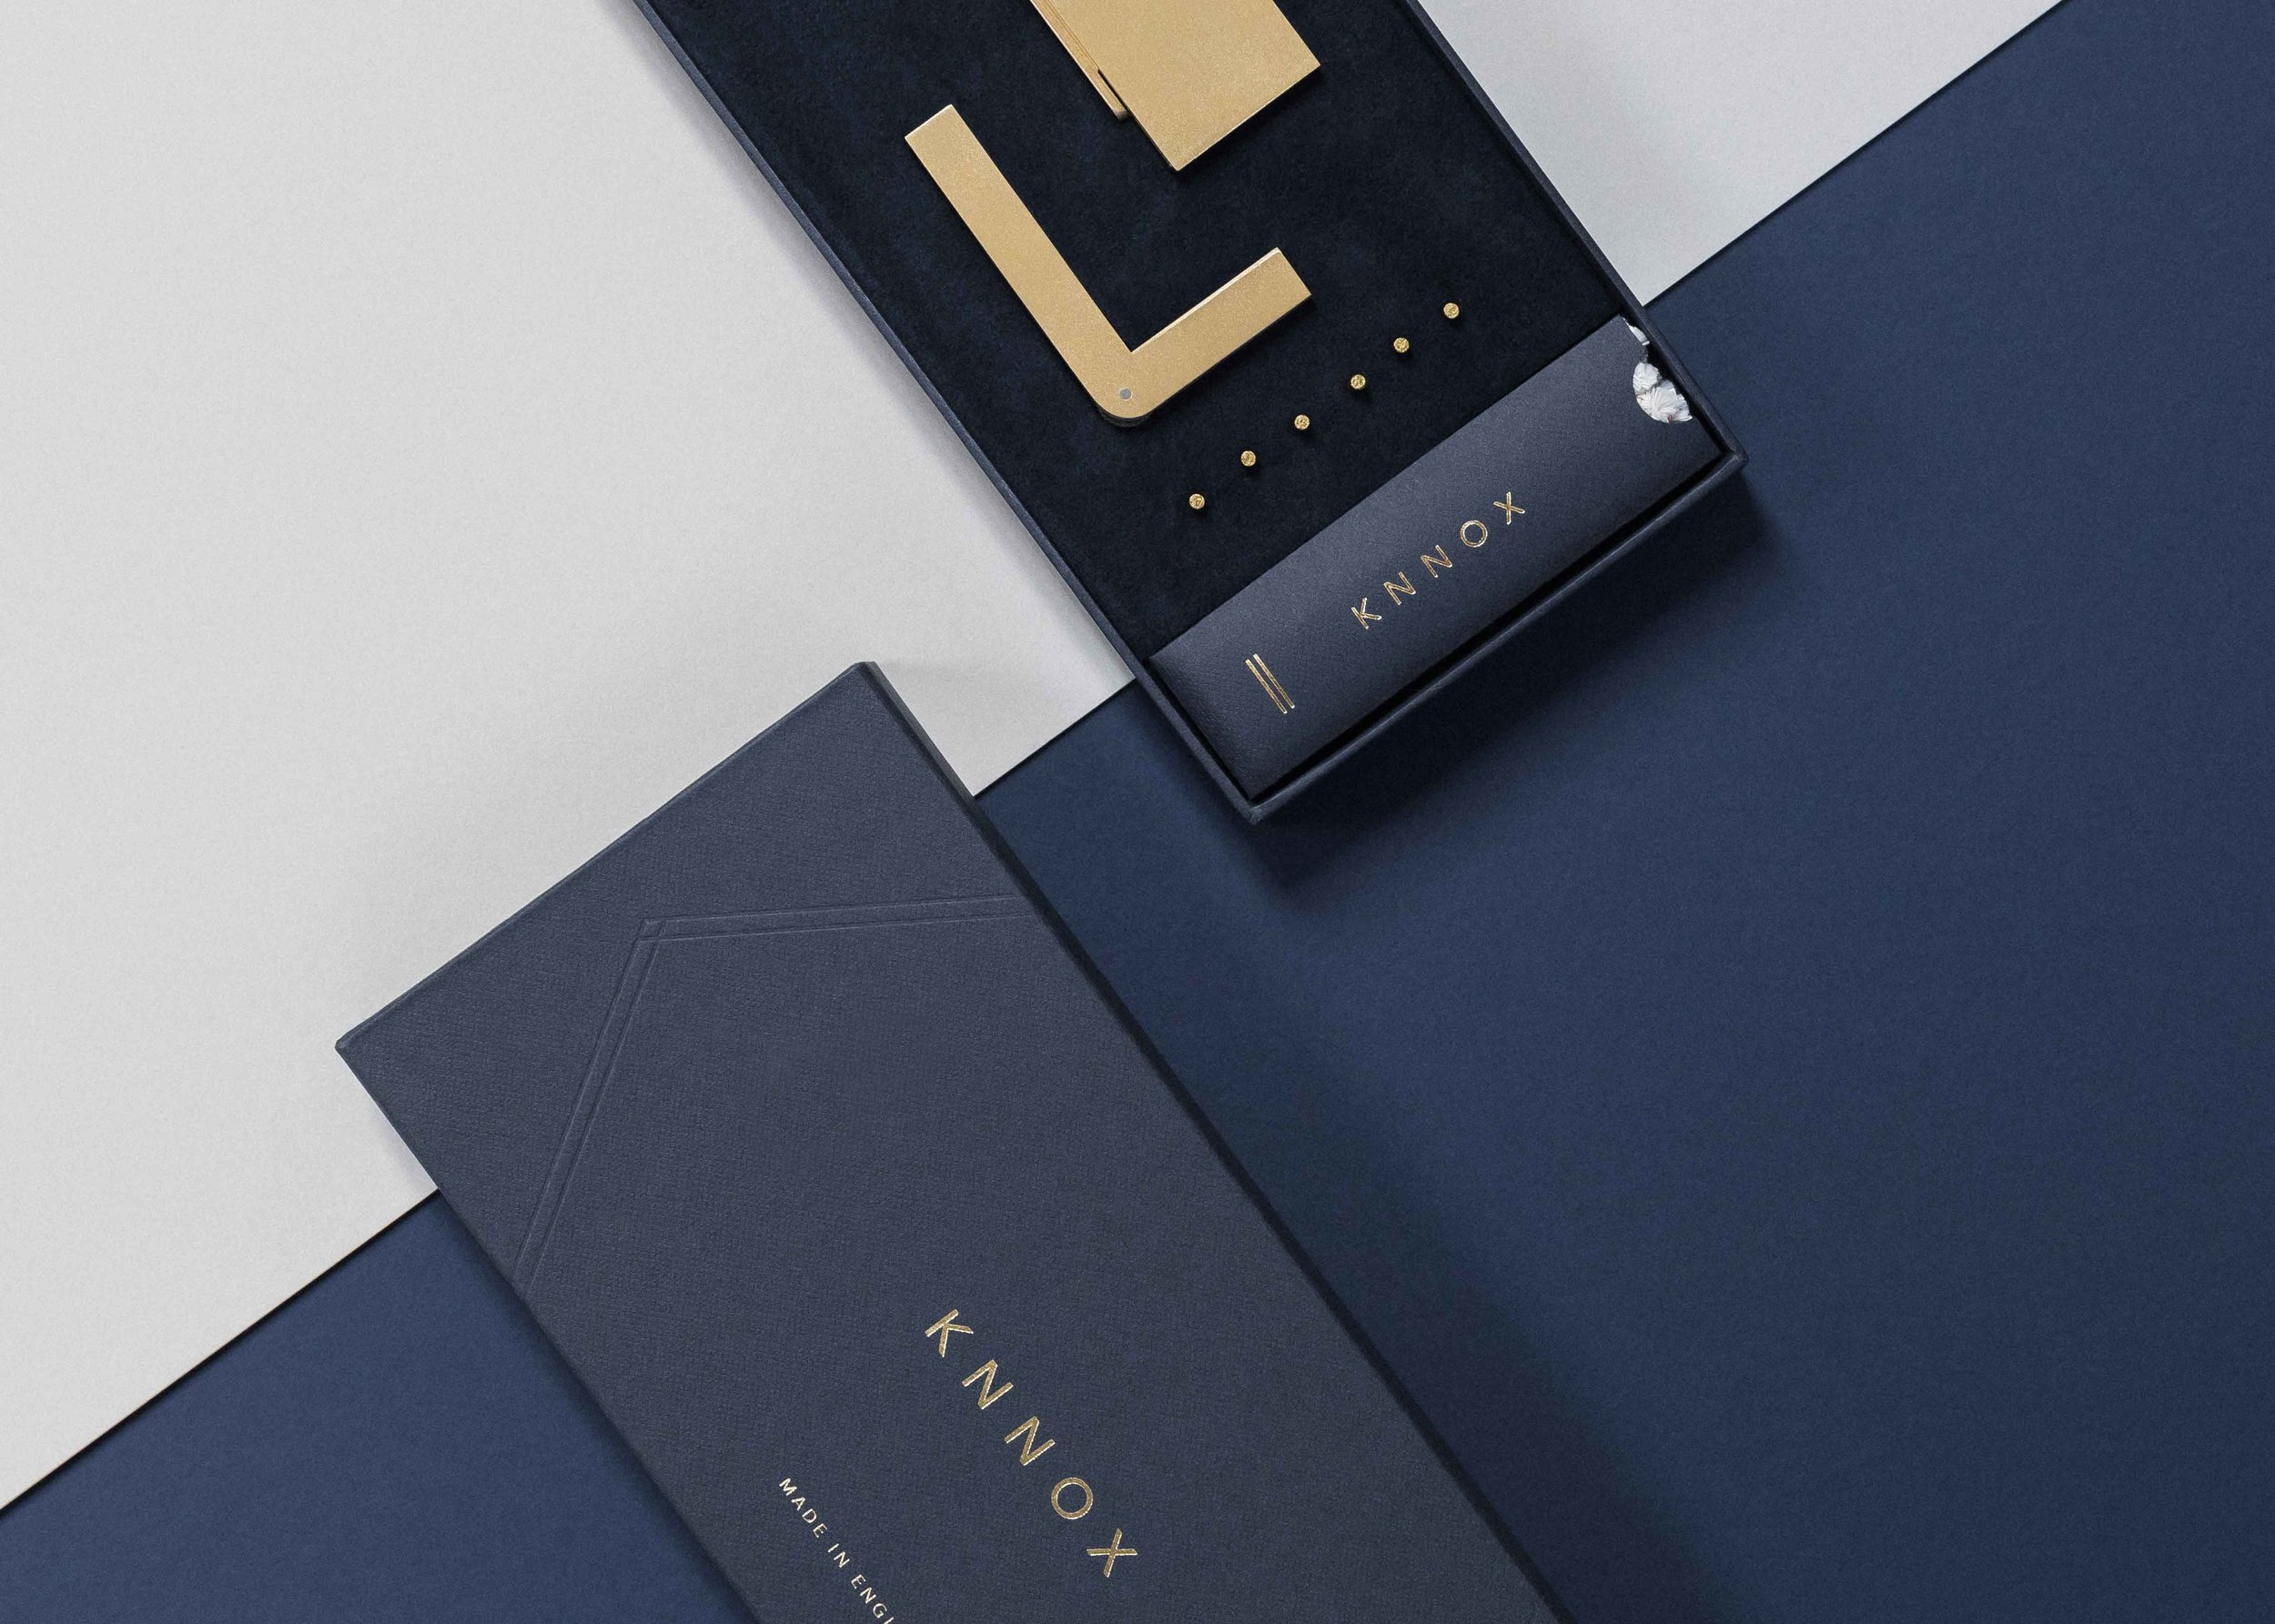 Minimal and Luxurious Packaging Design for the KNNOX Lighter